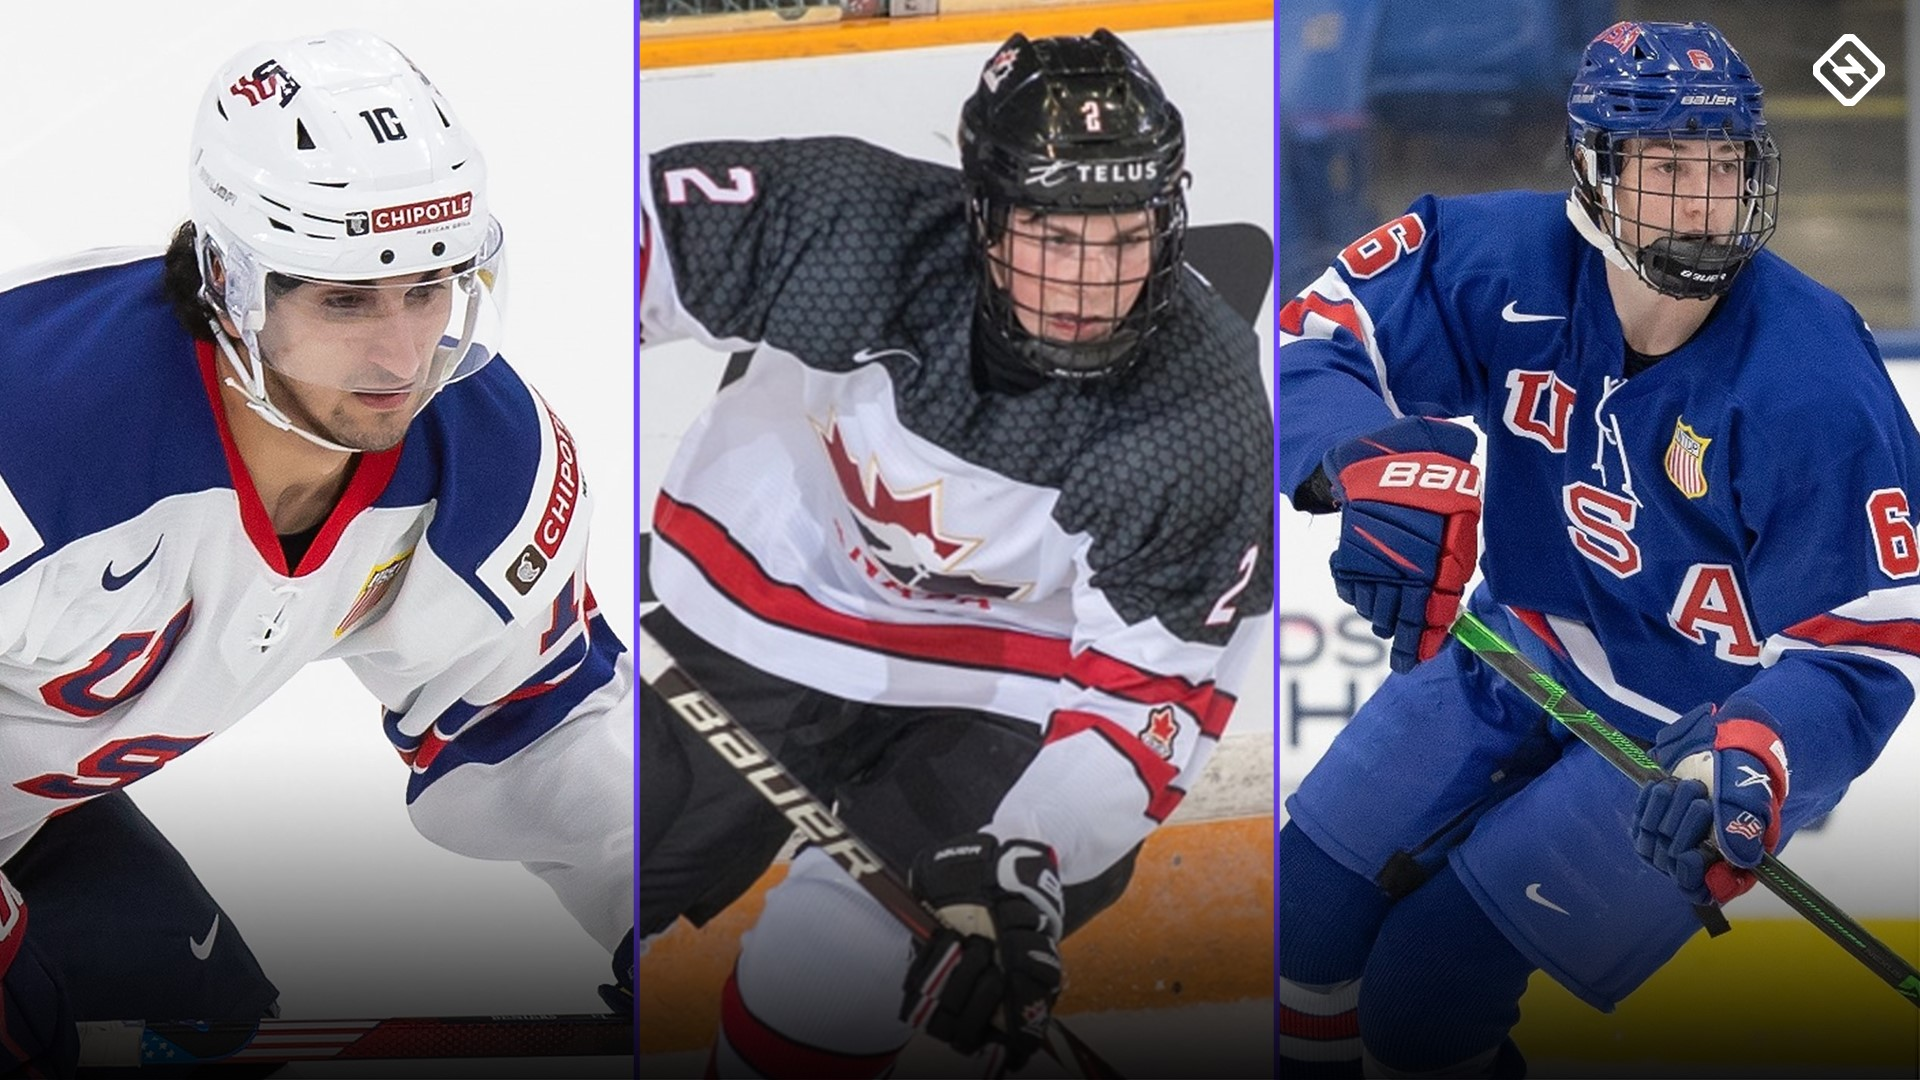 NHL Draft prospects 2021: Ranking the top 32 players overall on the big board - sporting news